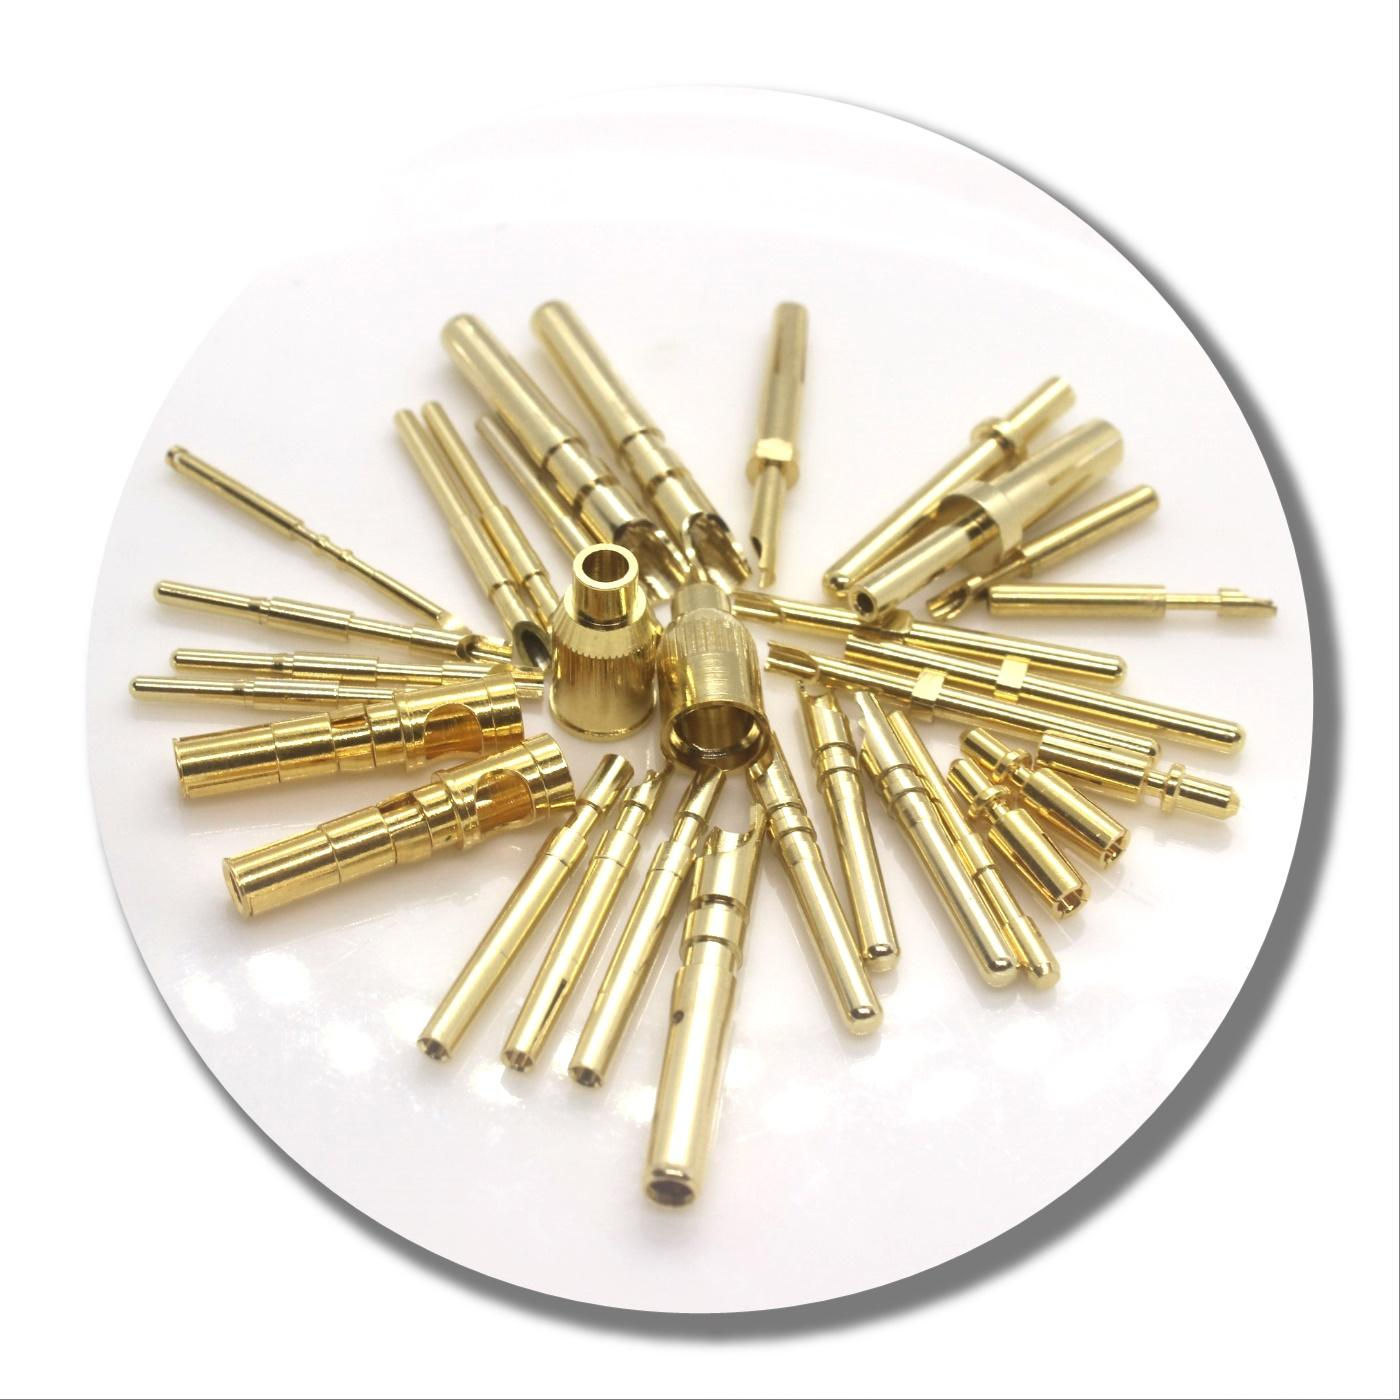 electronic components M12 connector pins 1